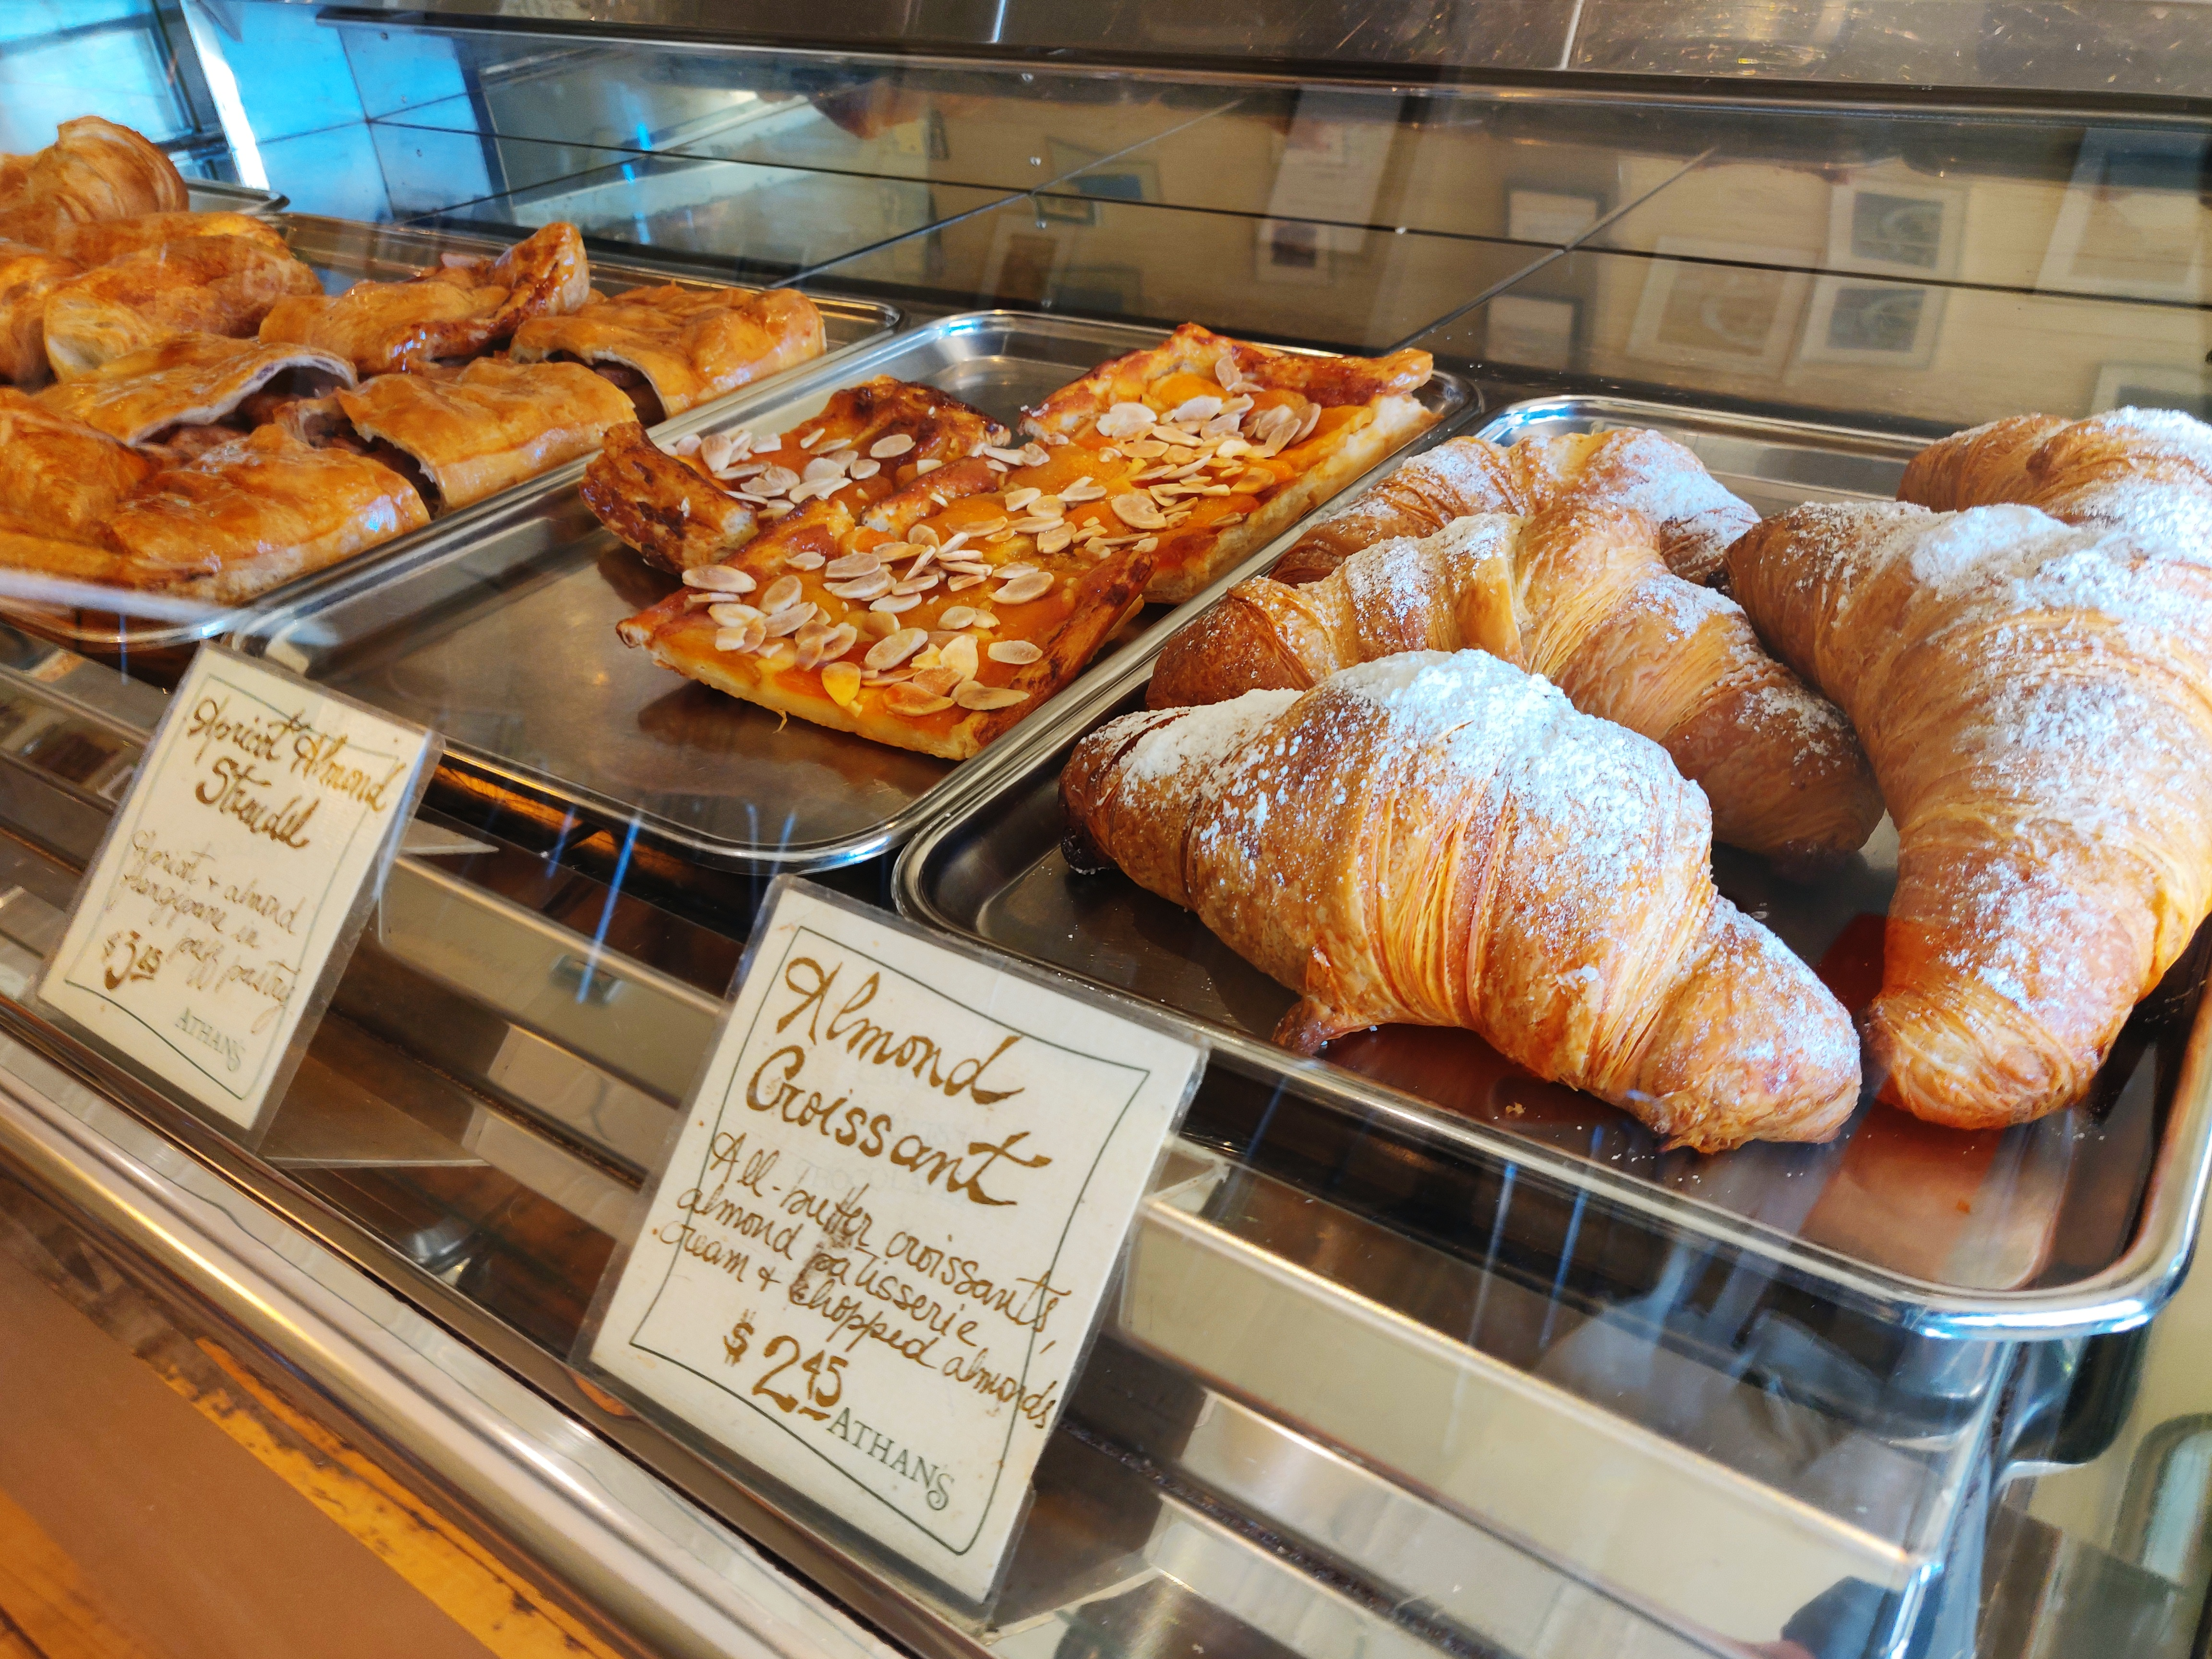 Pastries at Athan's Bakery in Brighton